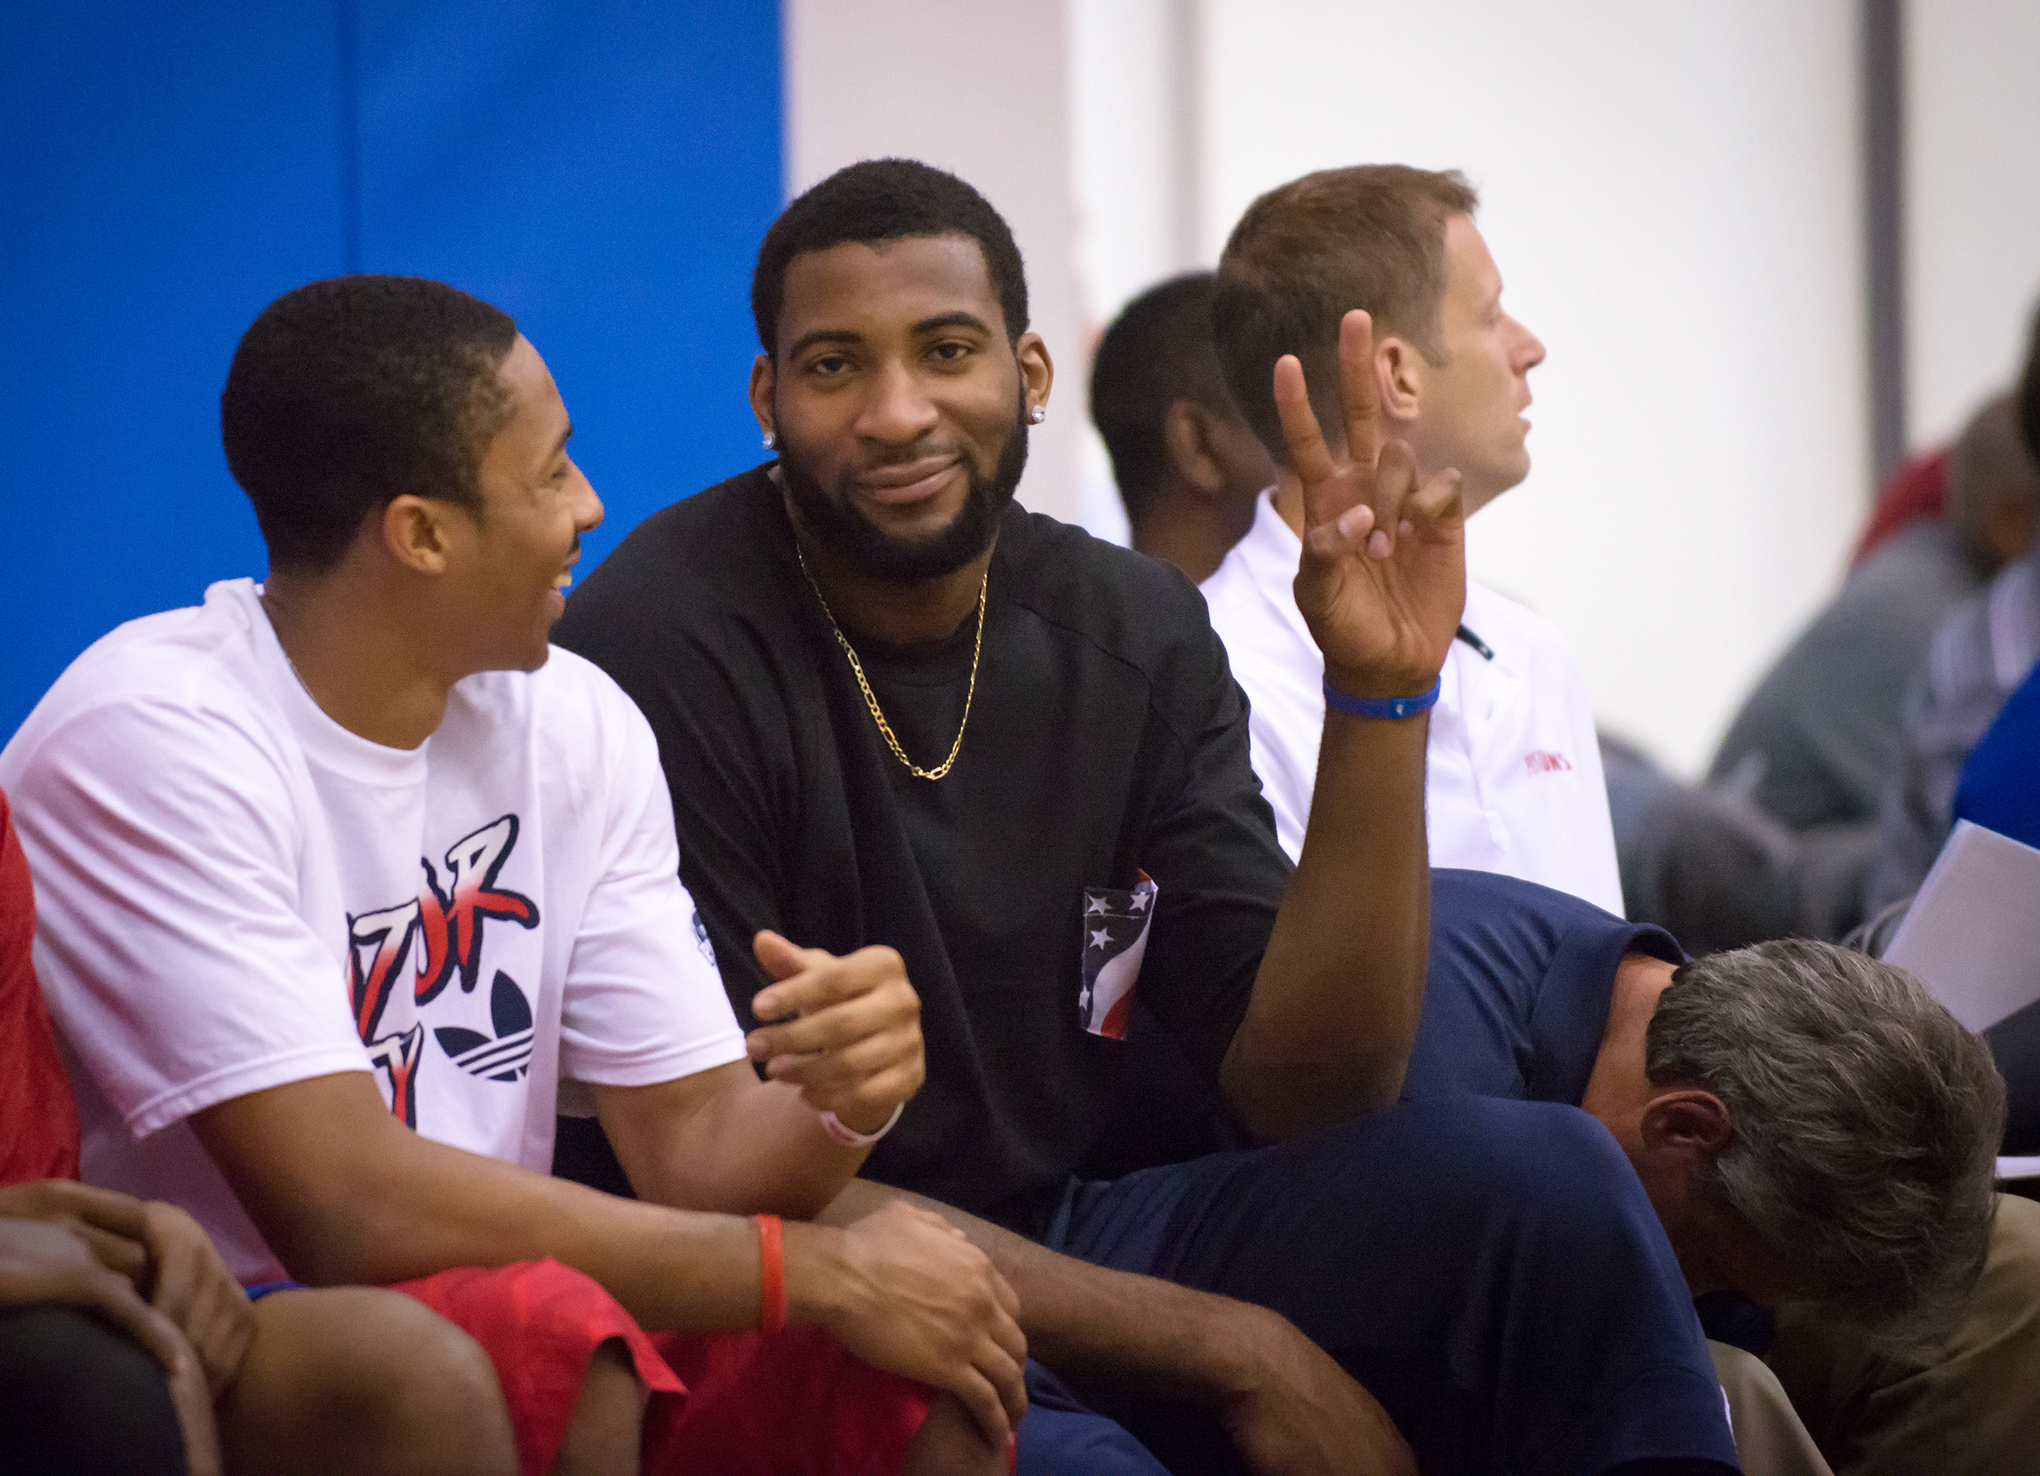 f0c93cd2c45d Andre Drummond flips a peace sign at the camera. Drummond would not play in  Orlando this summer